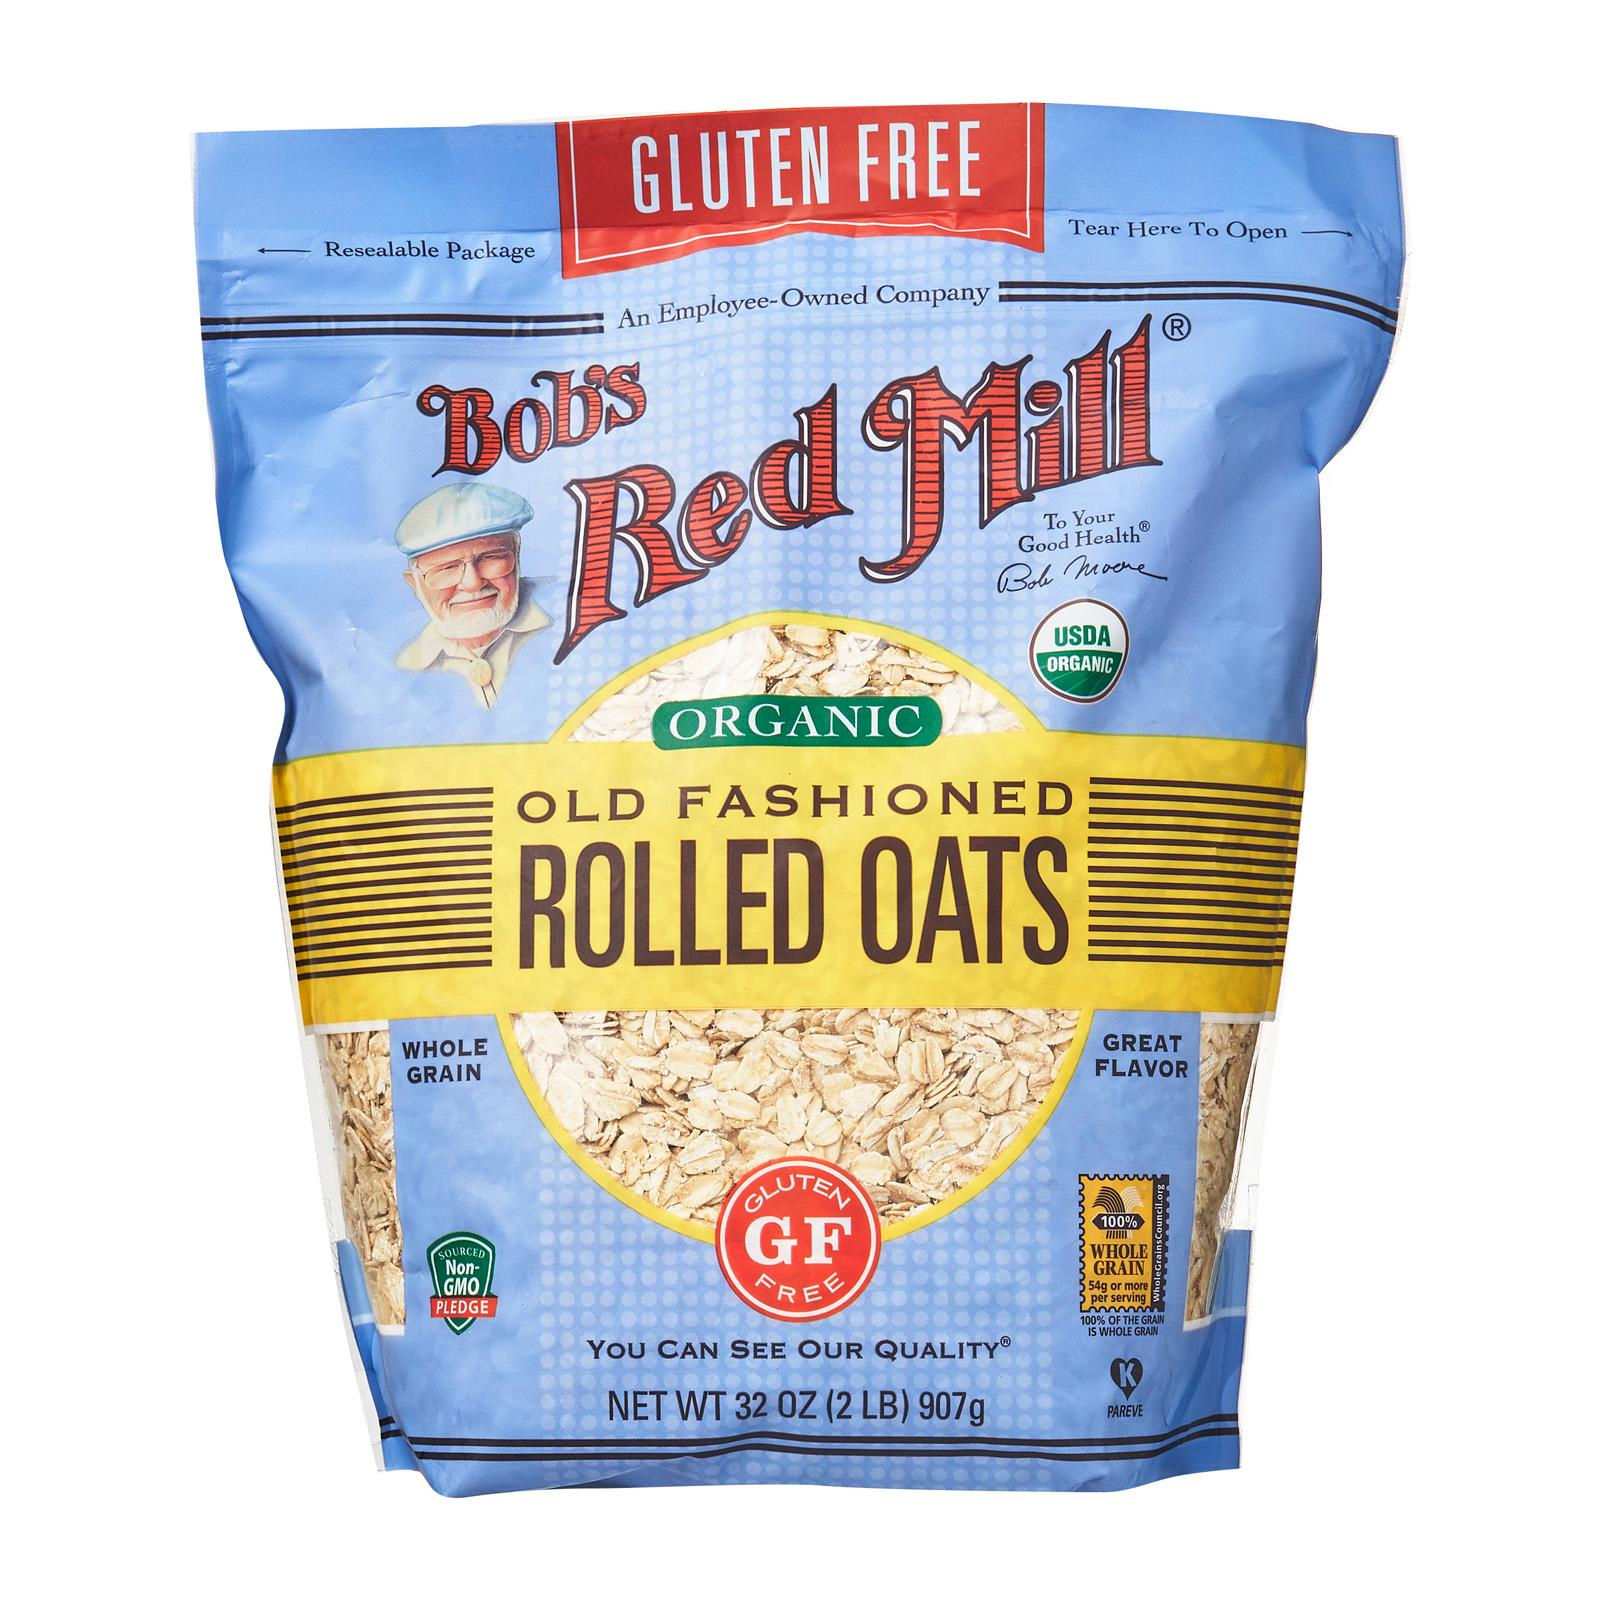 BOB'S RED MILL Gluten-Free Old Fashioned Rolled Oats Whole Grain